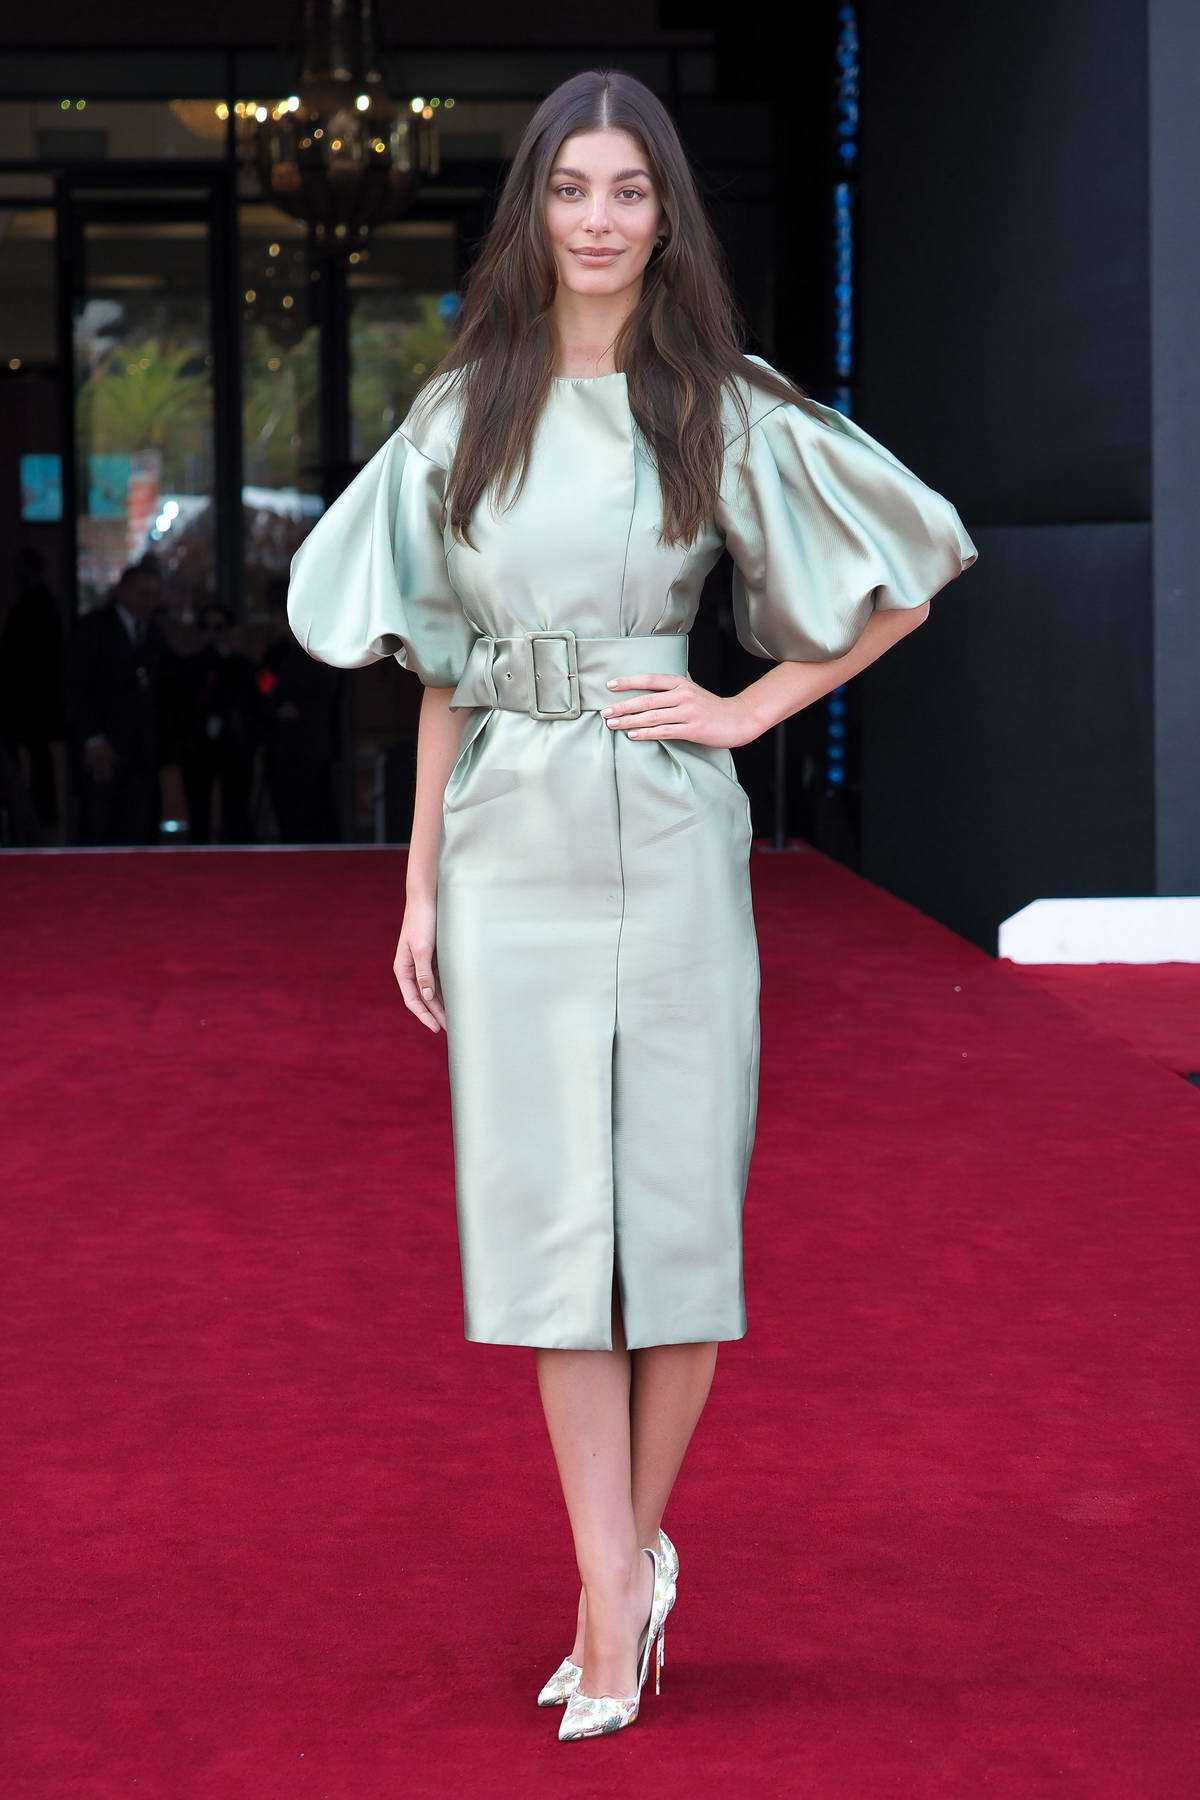 Camila Morrone attends the Premiere of 'Mickey and the Bear' during 18th Marrakech International Film Festival in Marrakesh, Morocco